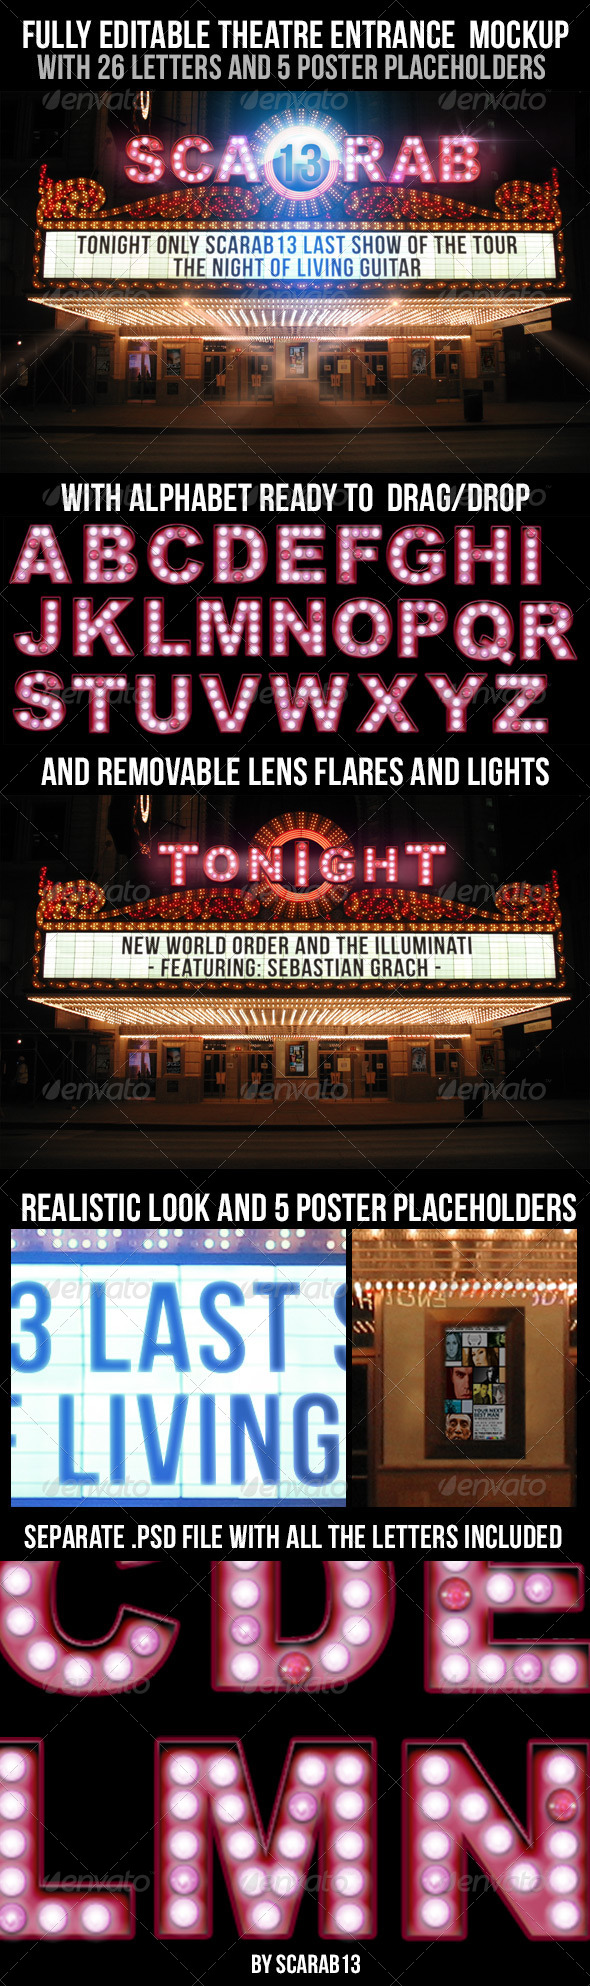 Realistic Looking Editable Theatre Mockup - Miscellaneous Graphics